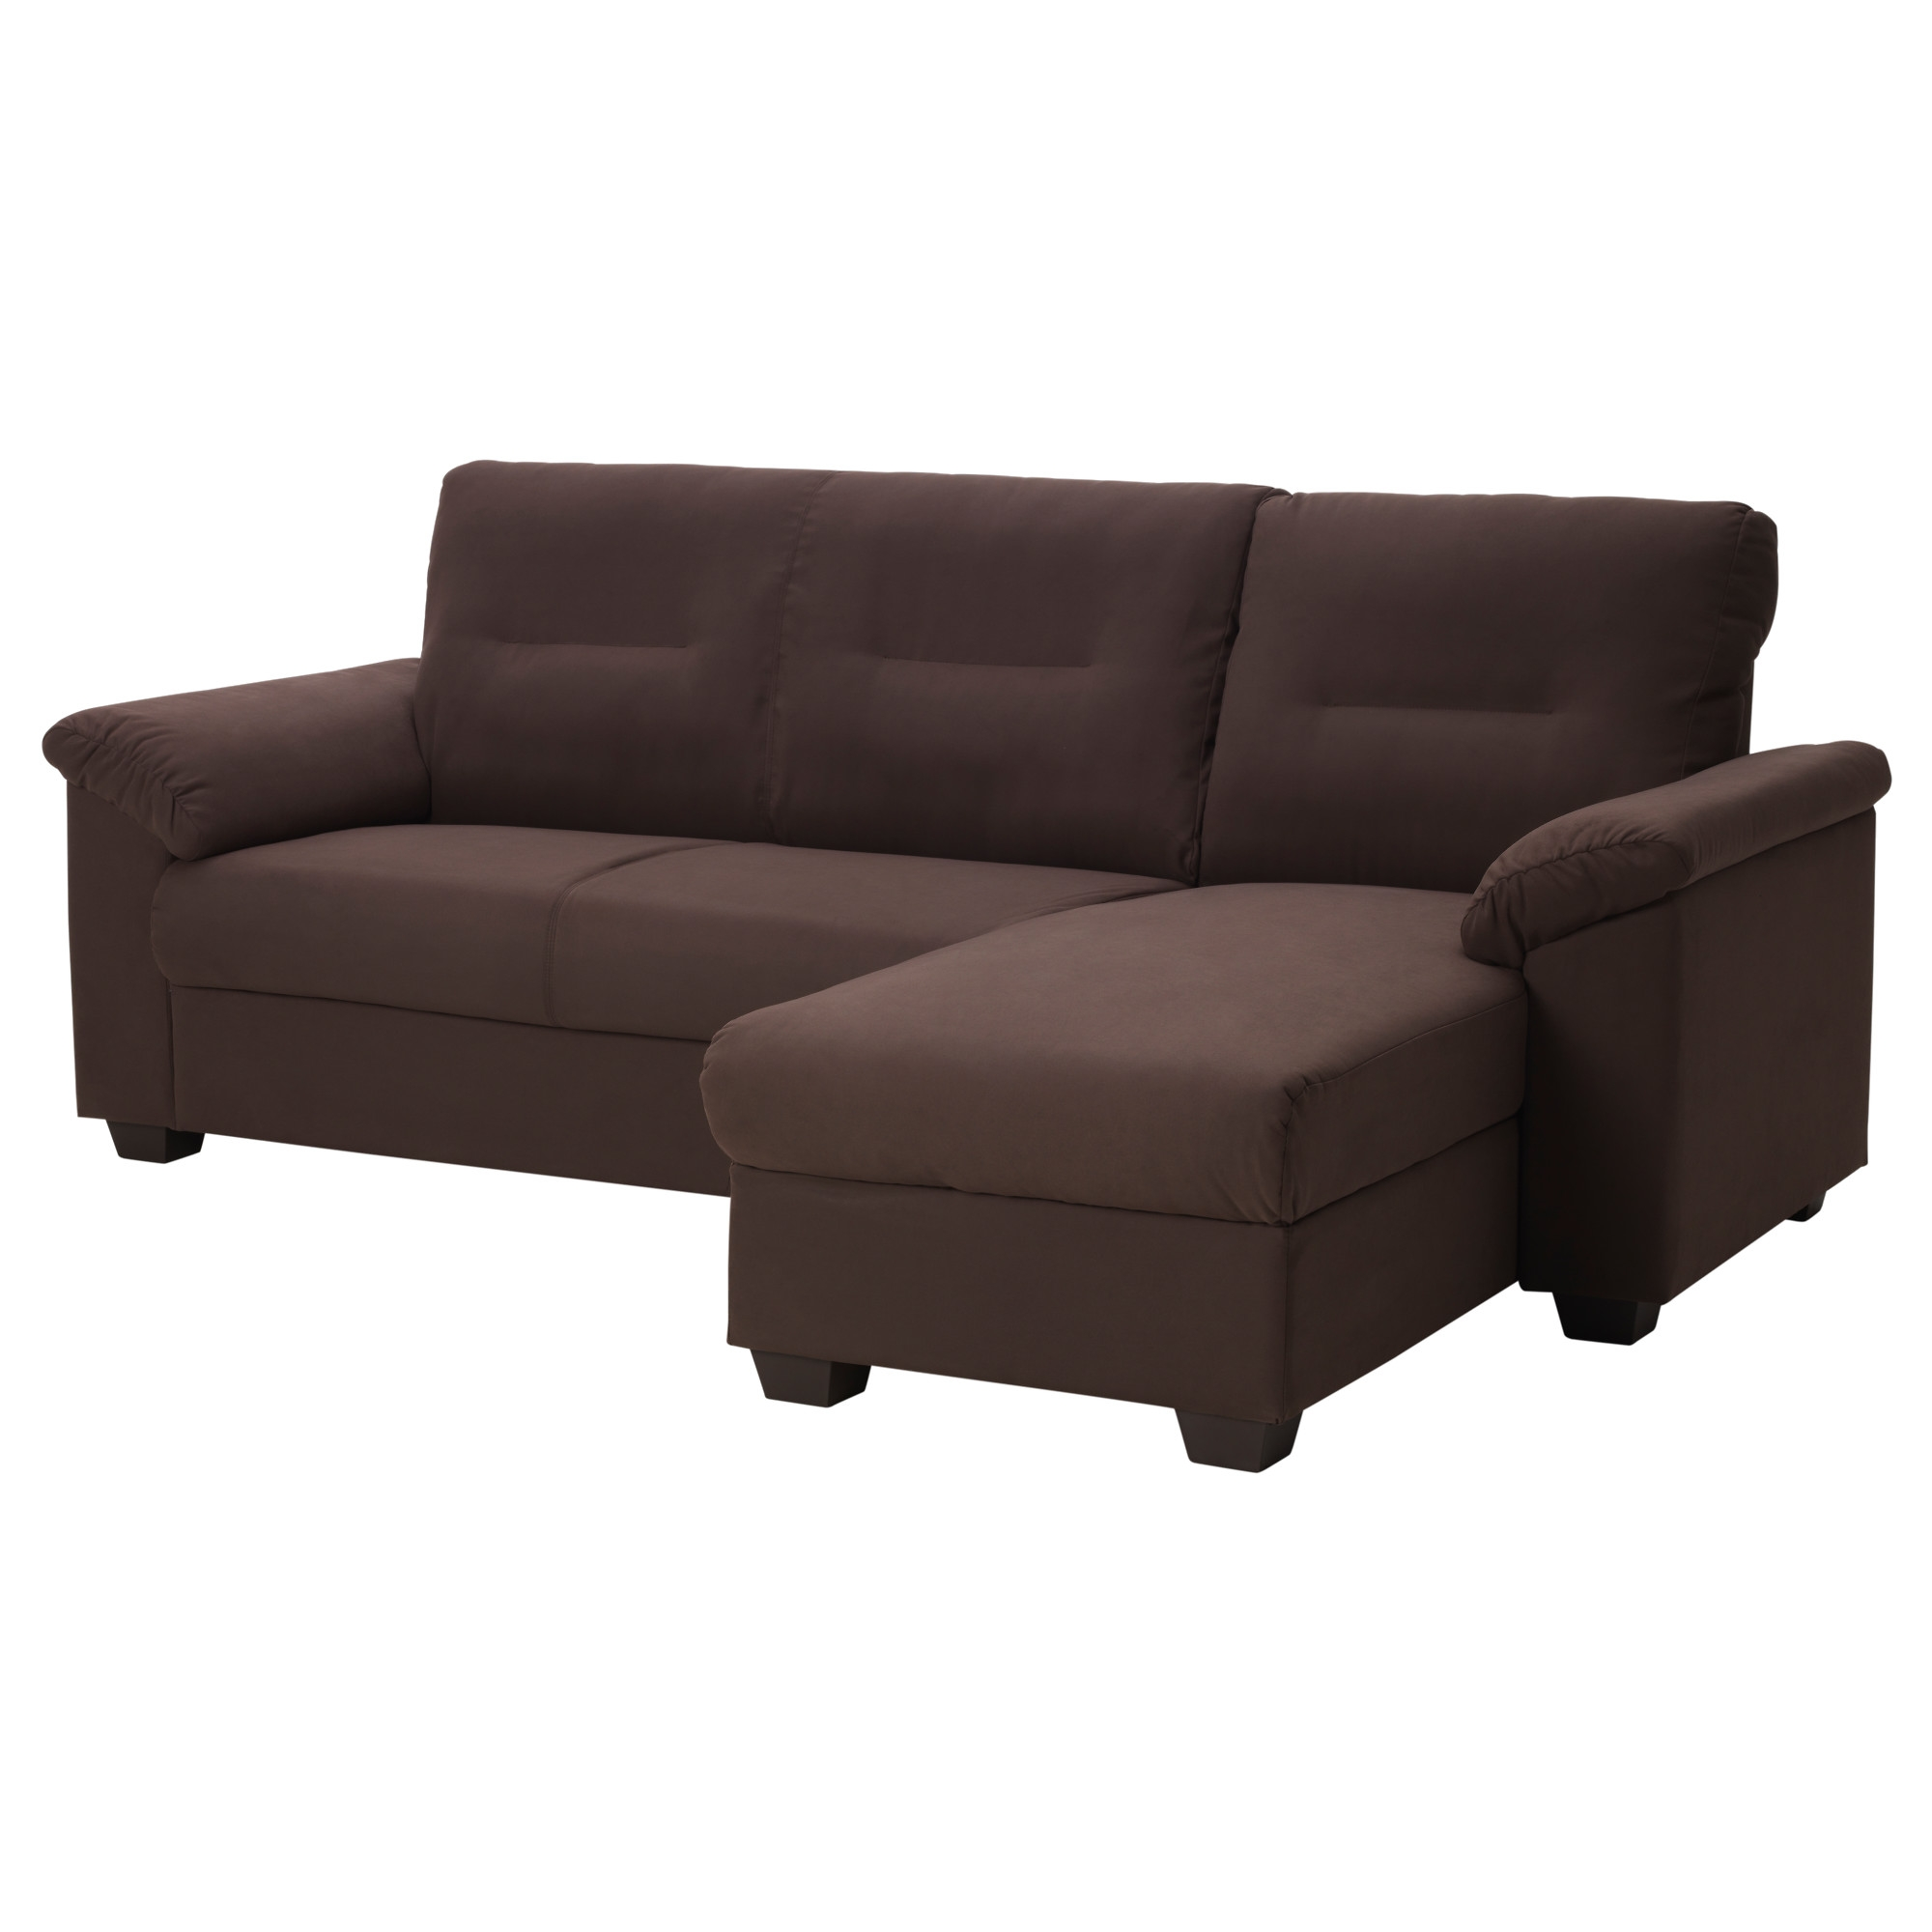 Fabric Sectional Sofas Modern Contemporary Ikea With Regard To Angled Sofa Sectional (Image 7 of 15)